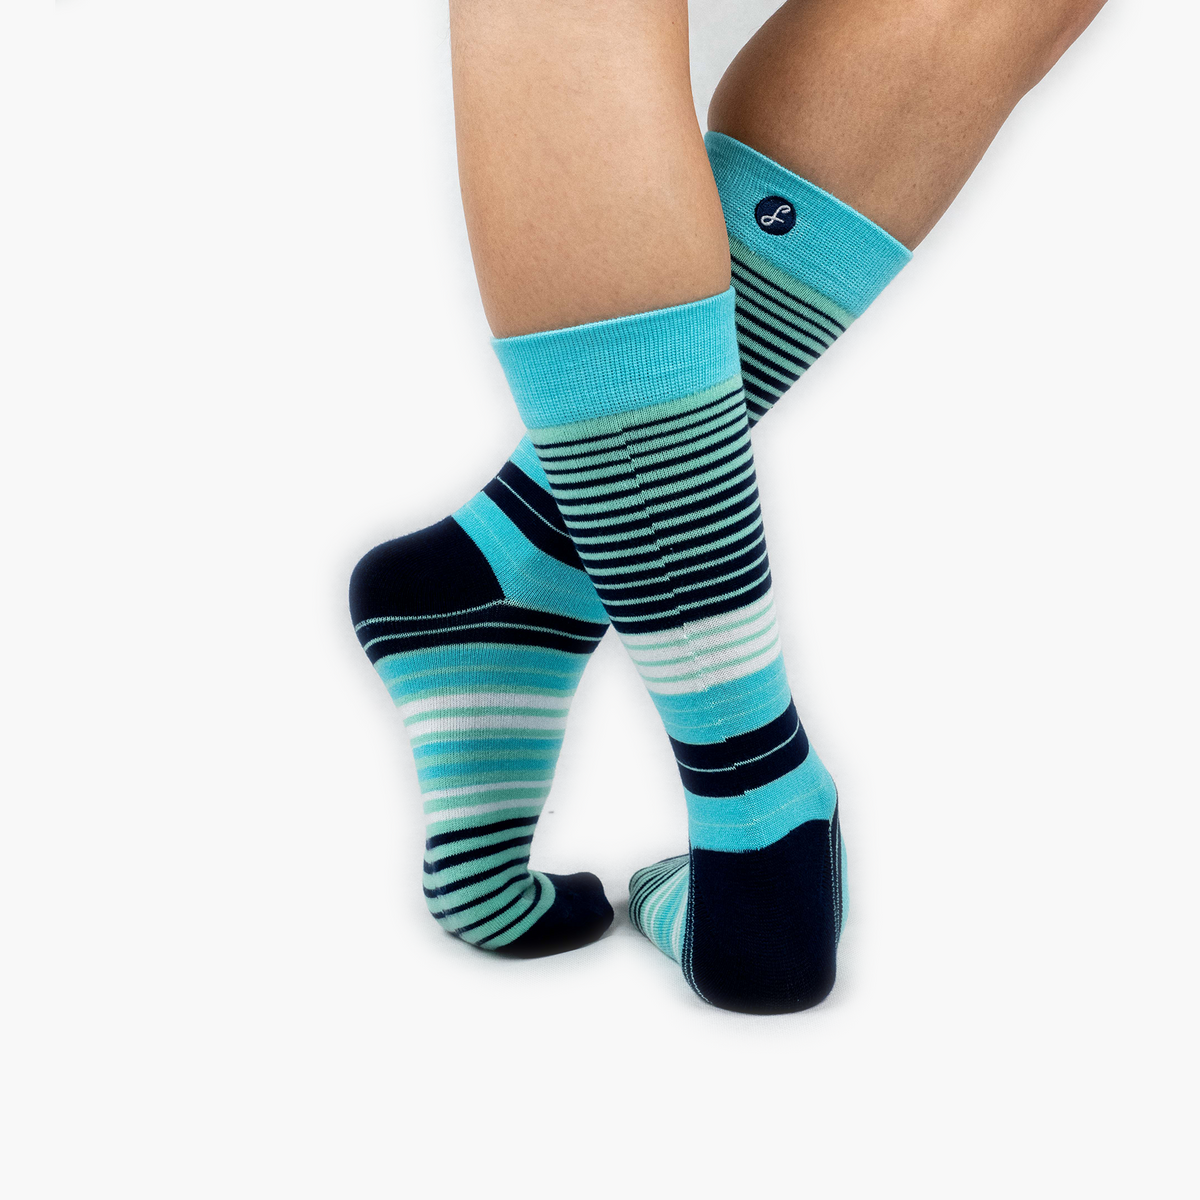 Teal Multi Striped Bamboo Crew Length Swanky Socks - SwankySocks